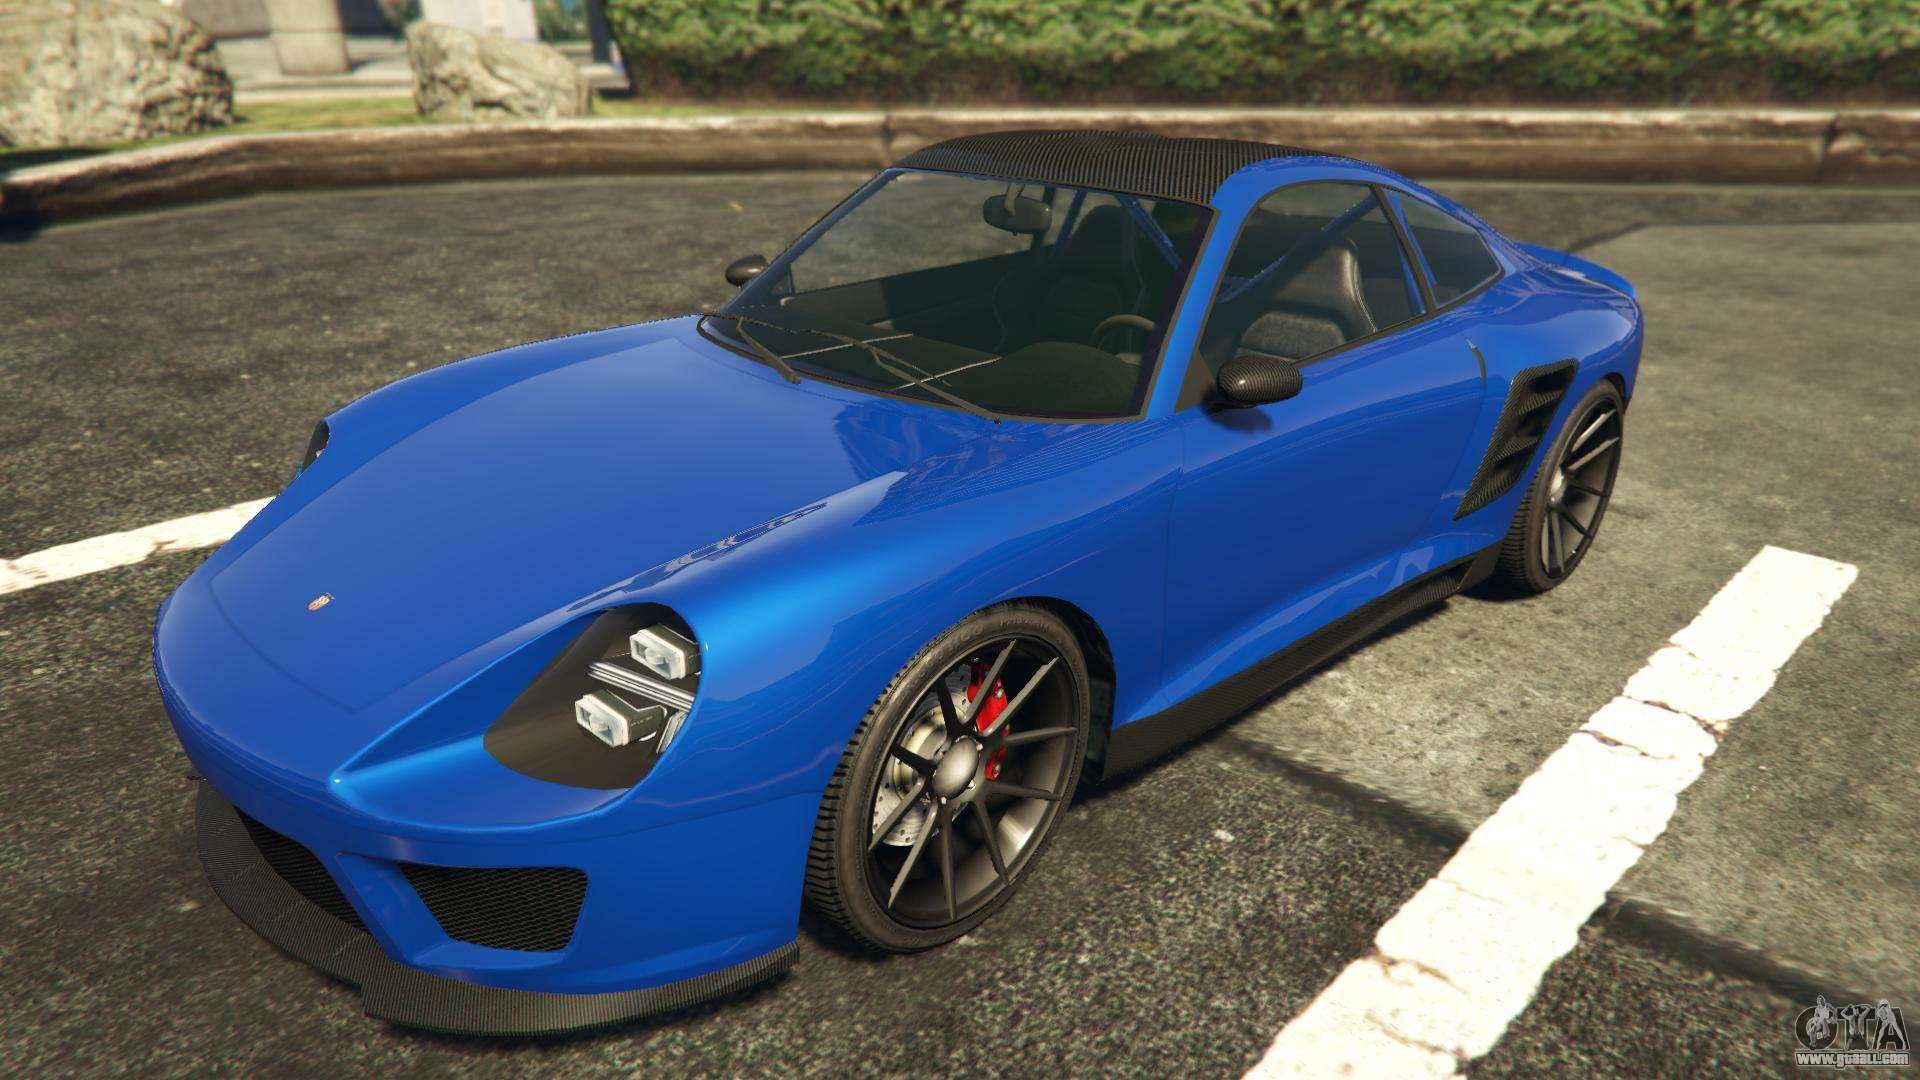 Pfister Comet SR In GTA 5 Online Where To Find And To Buy